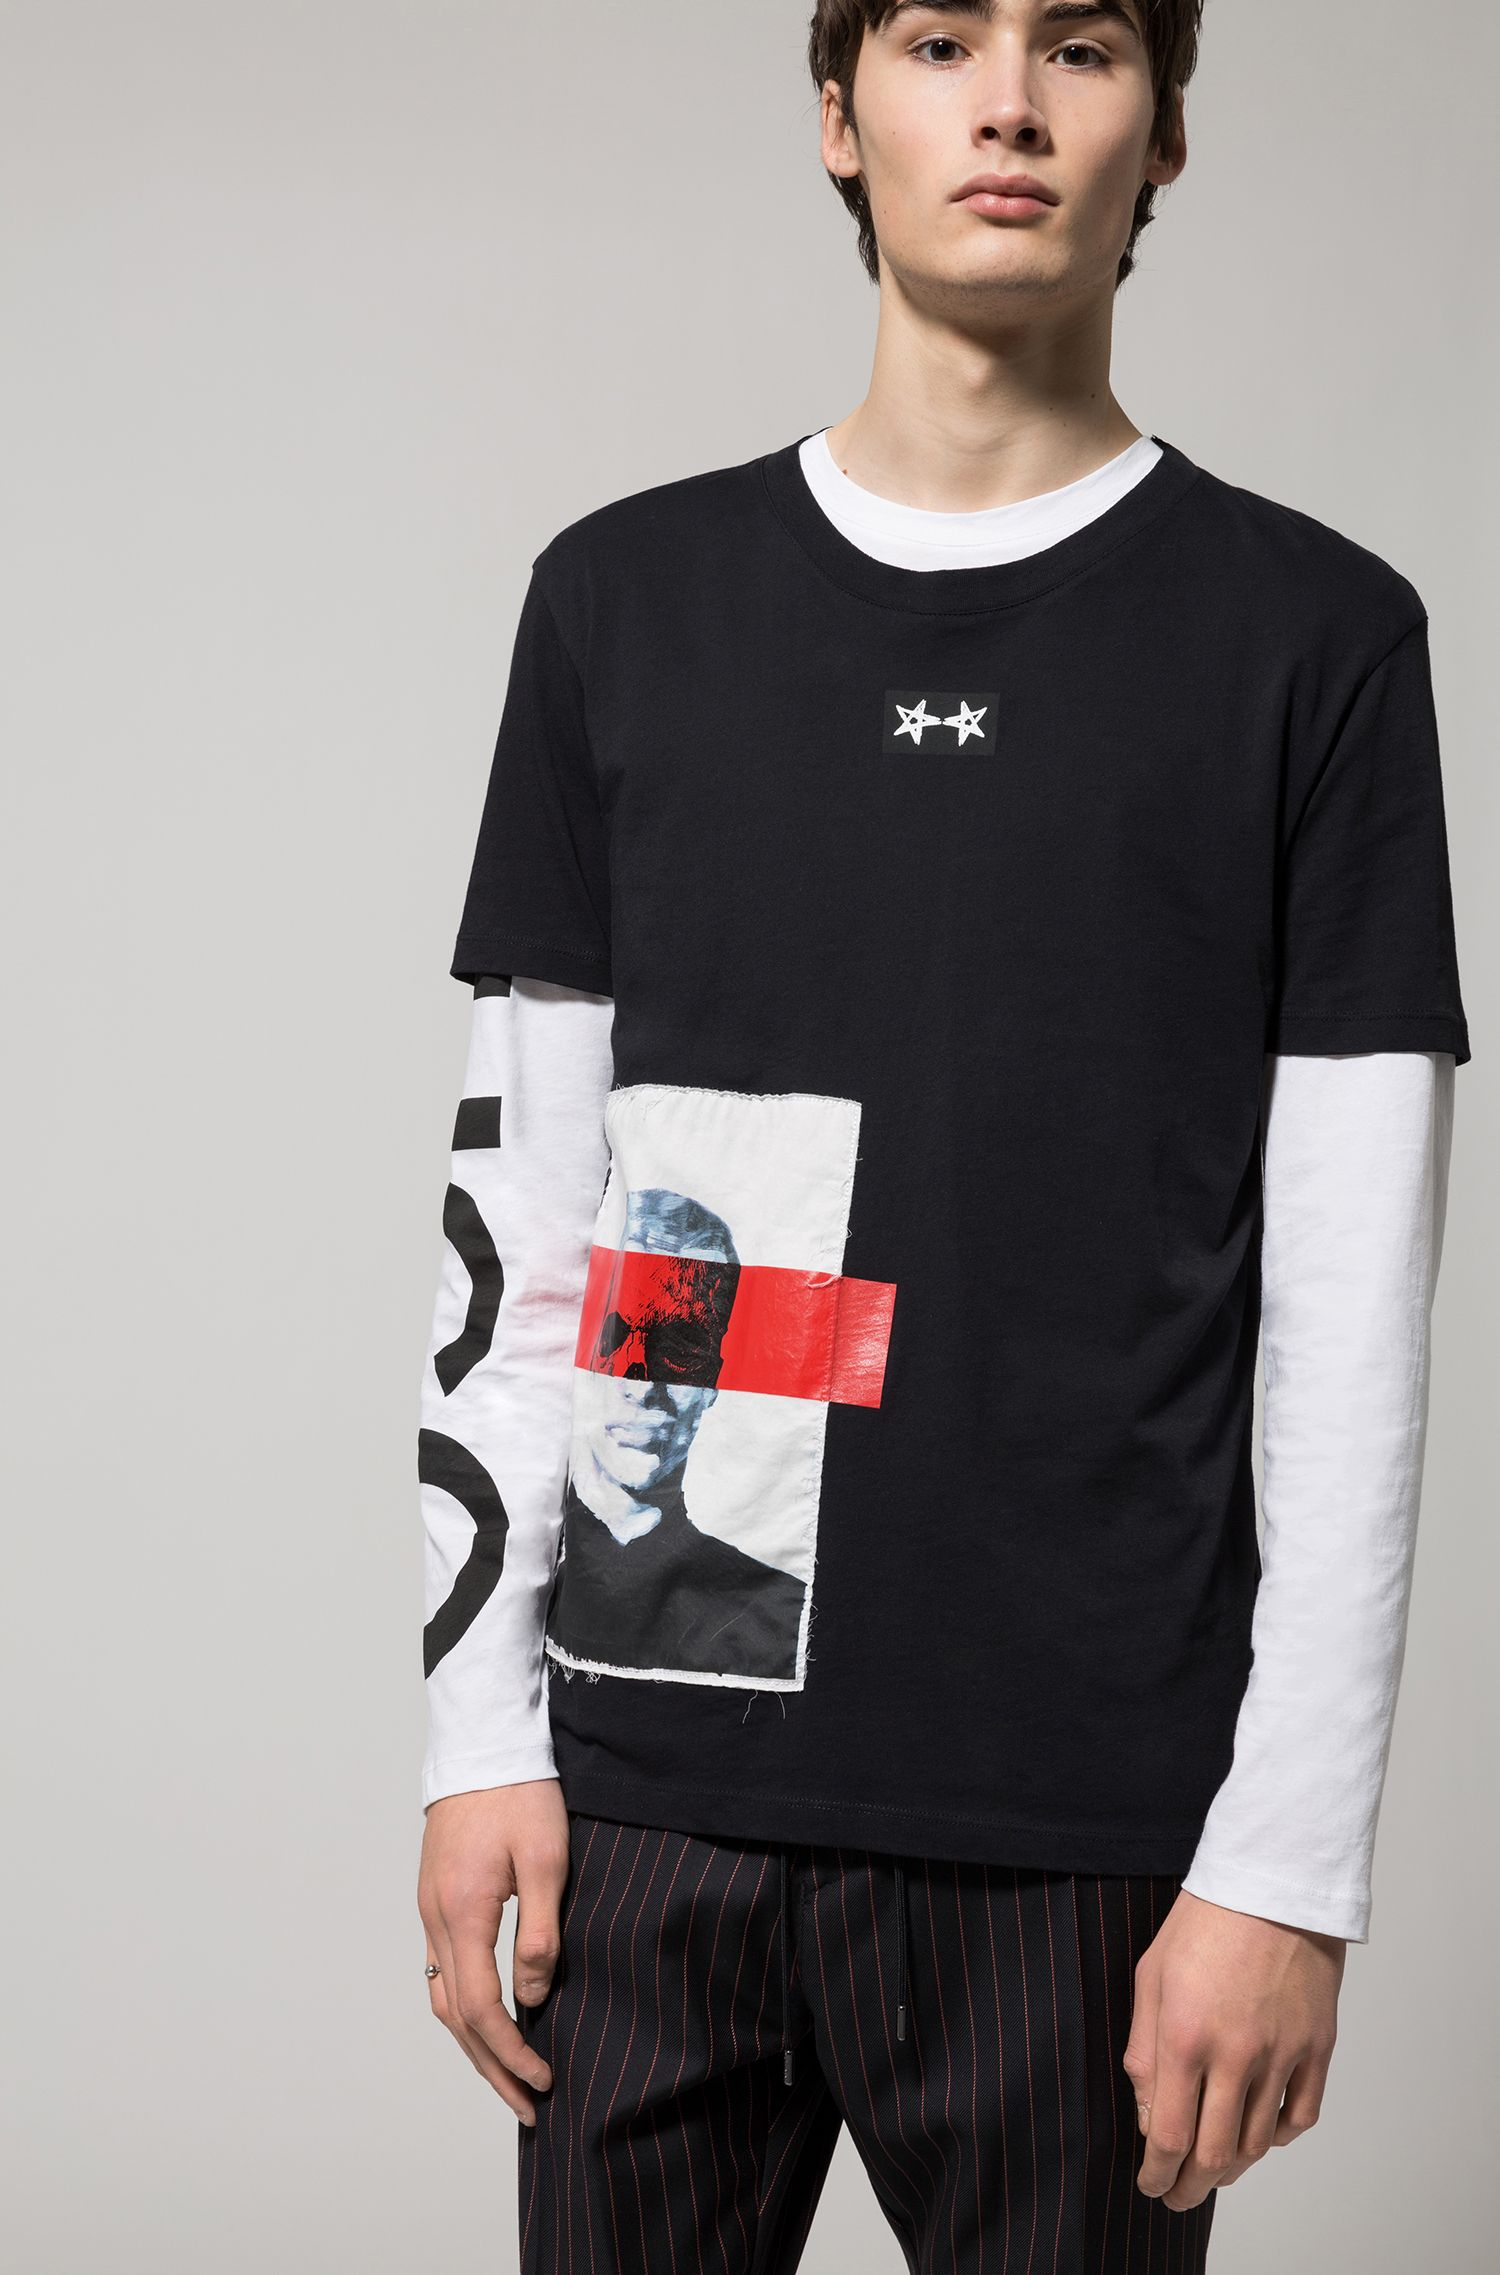 Appliqué Cotton Graphic T-Shirt | Dimage, Black